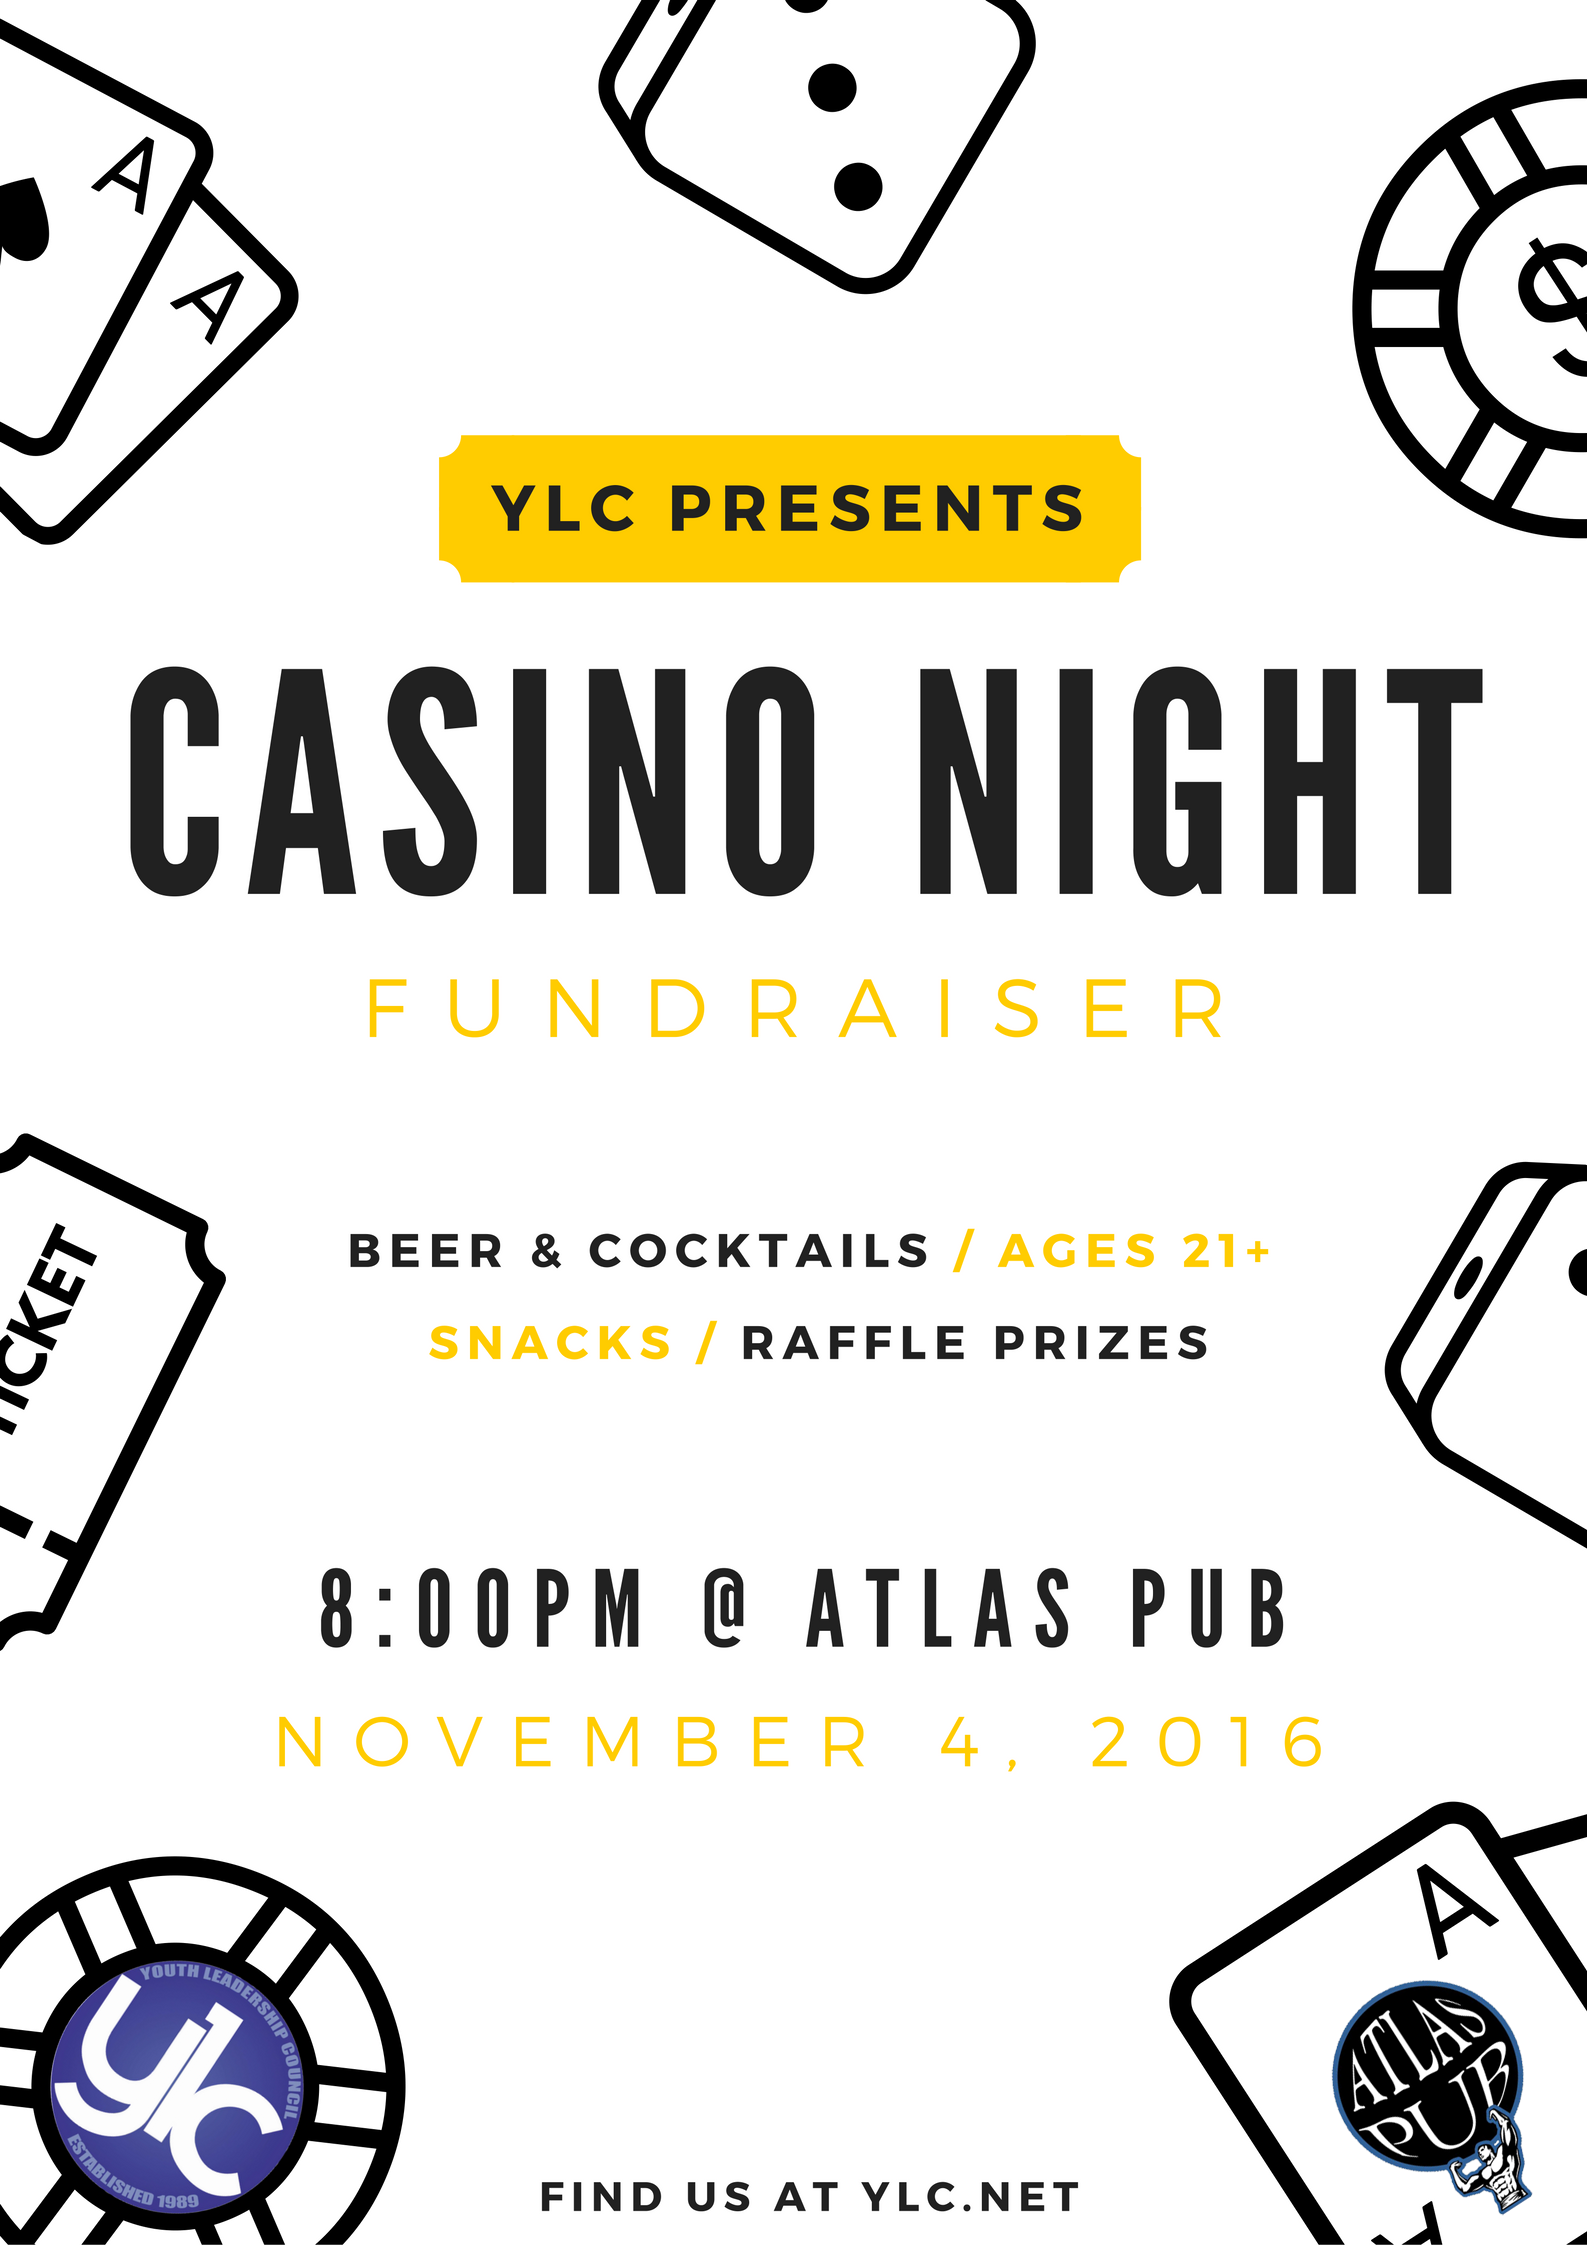 ylc-casino-night-flyer